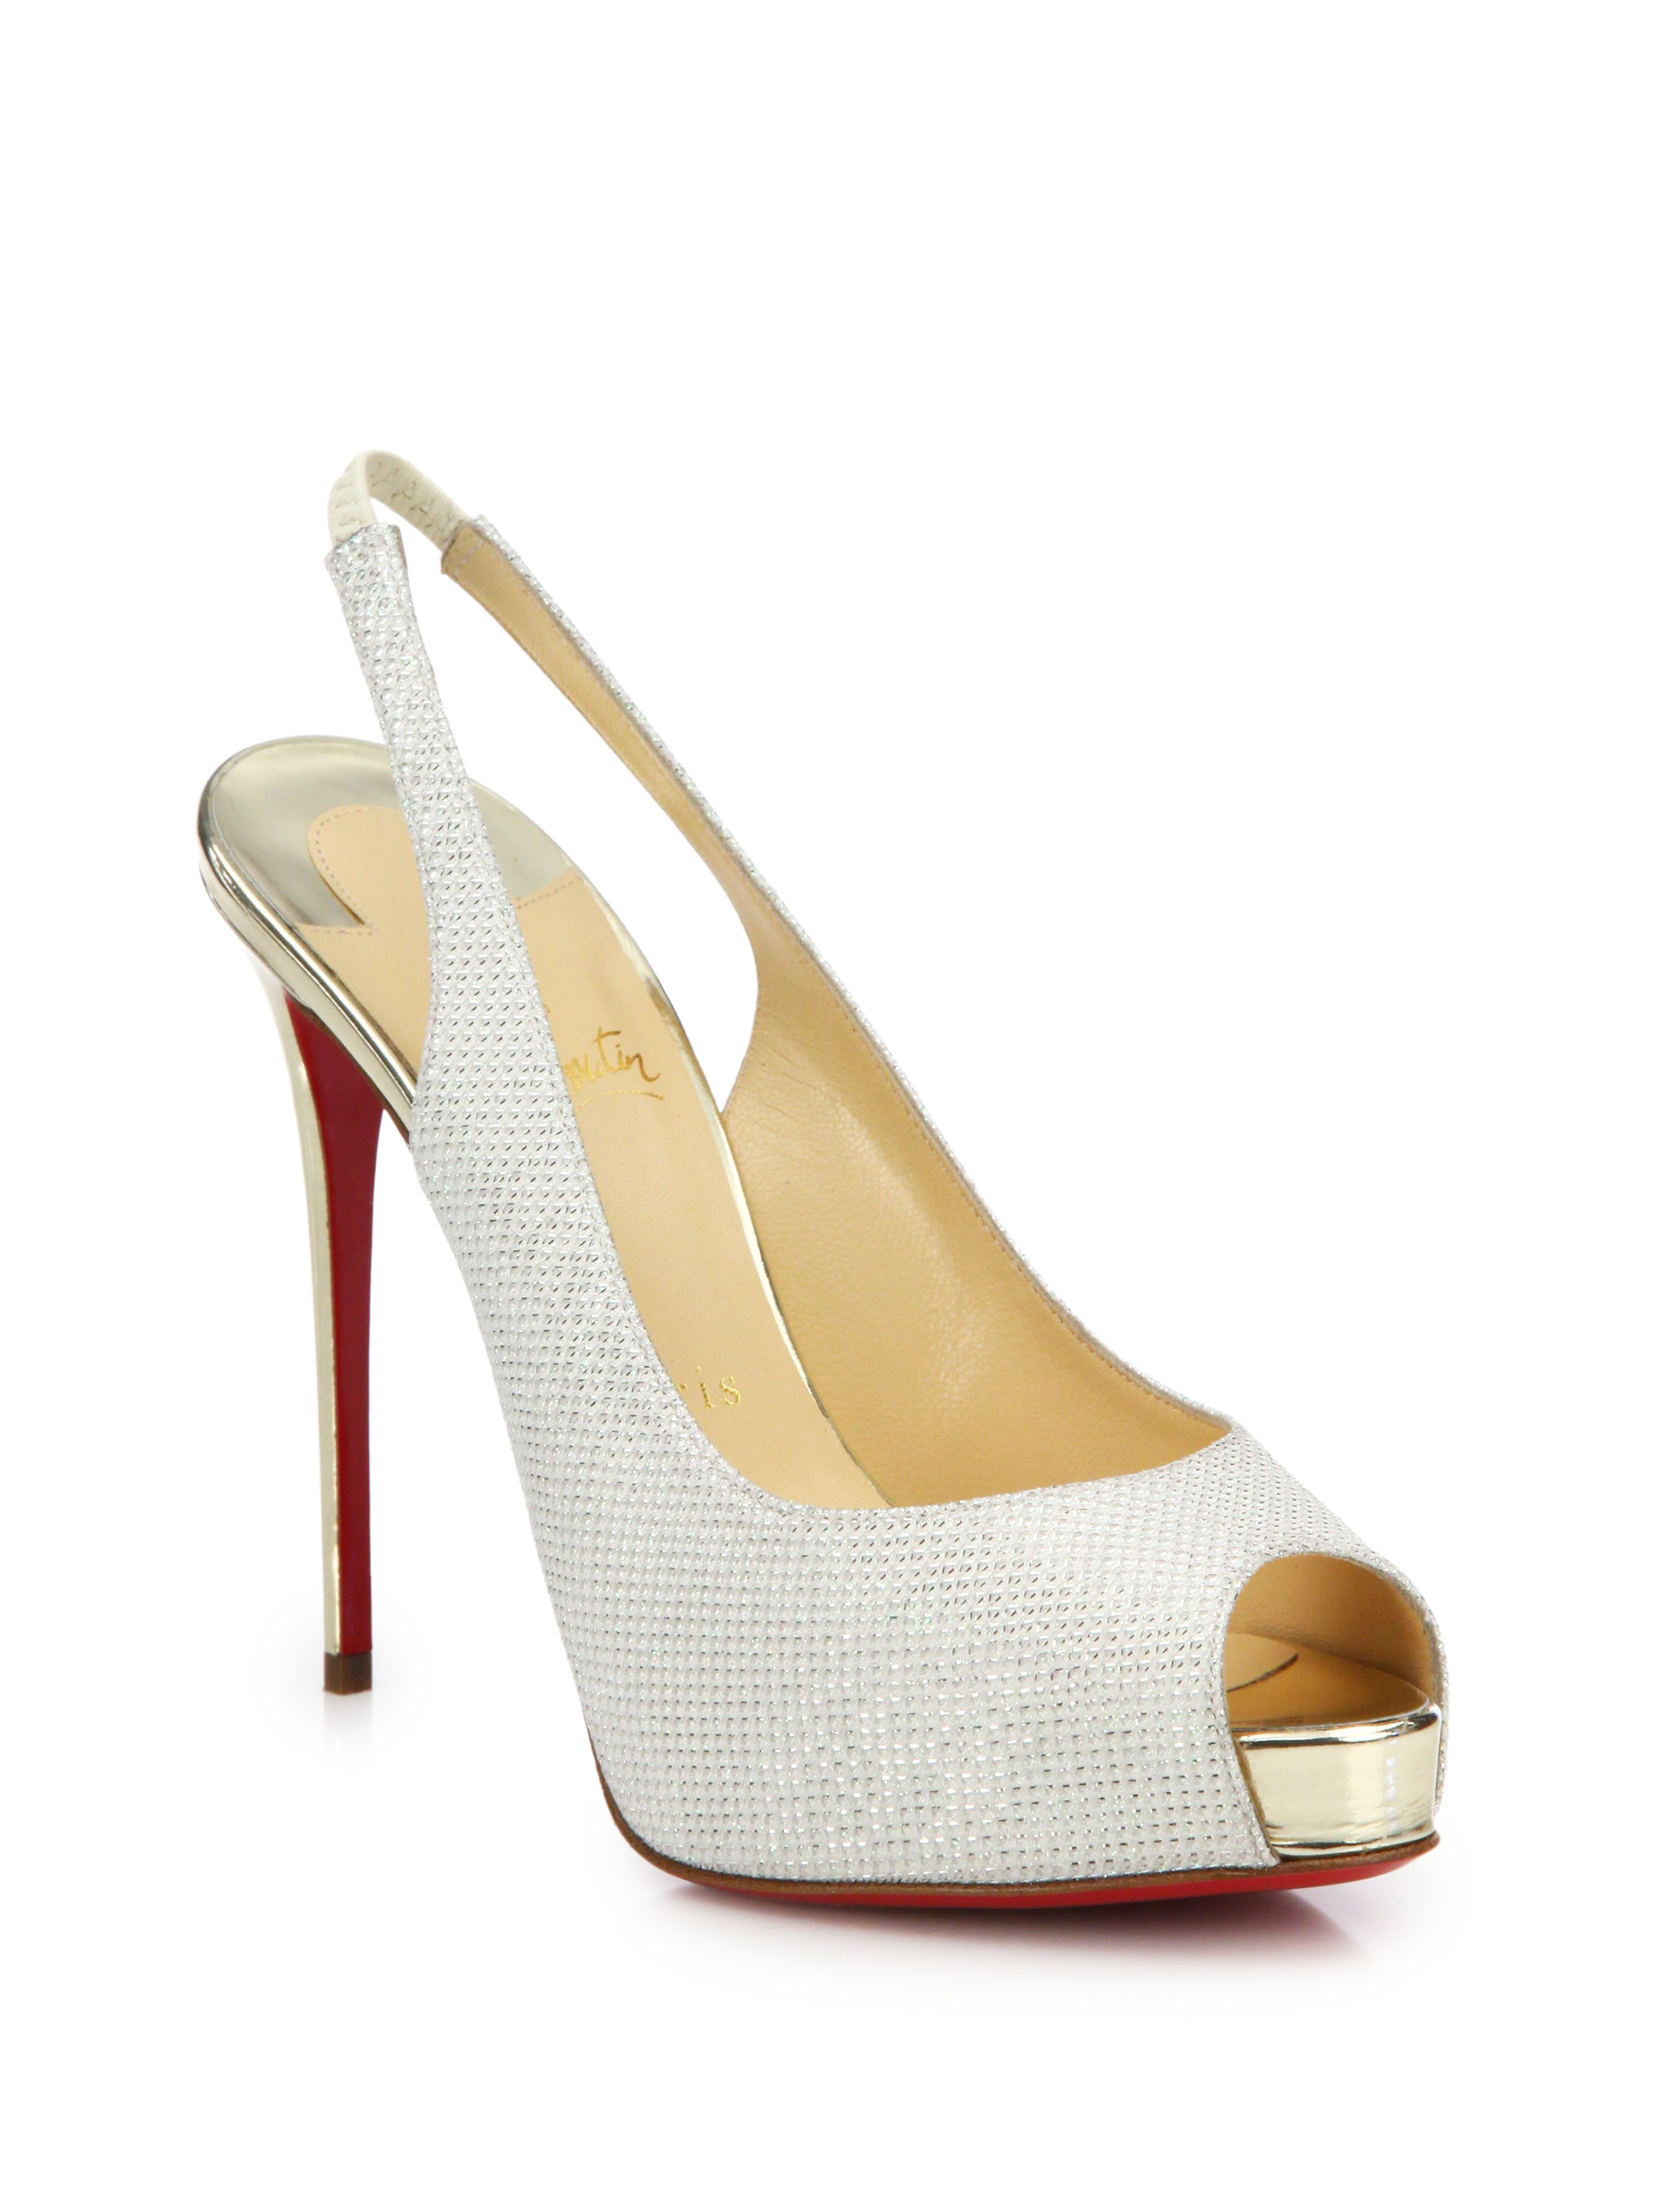 7aa3da585d2 Christian Louboutin White Private Number Glitter Slingback Pumps